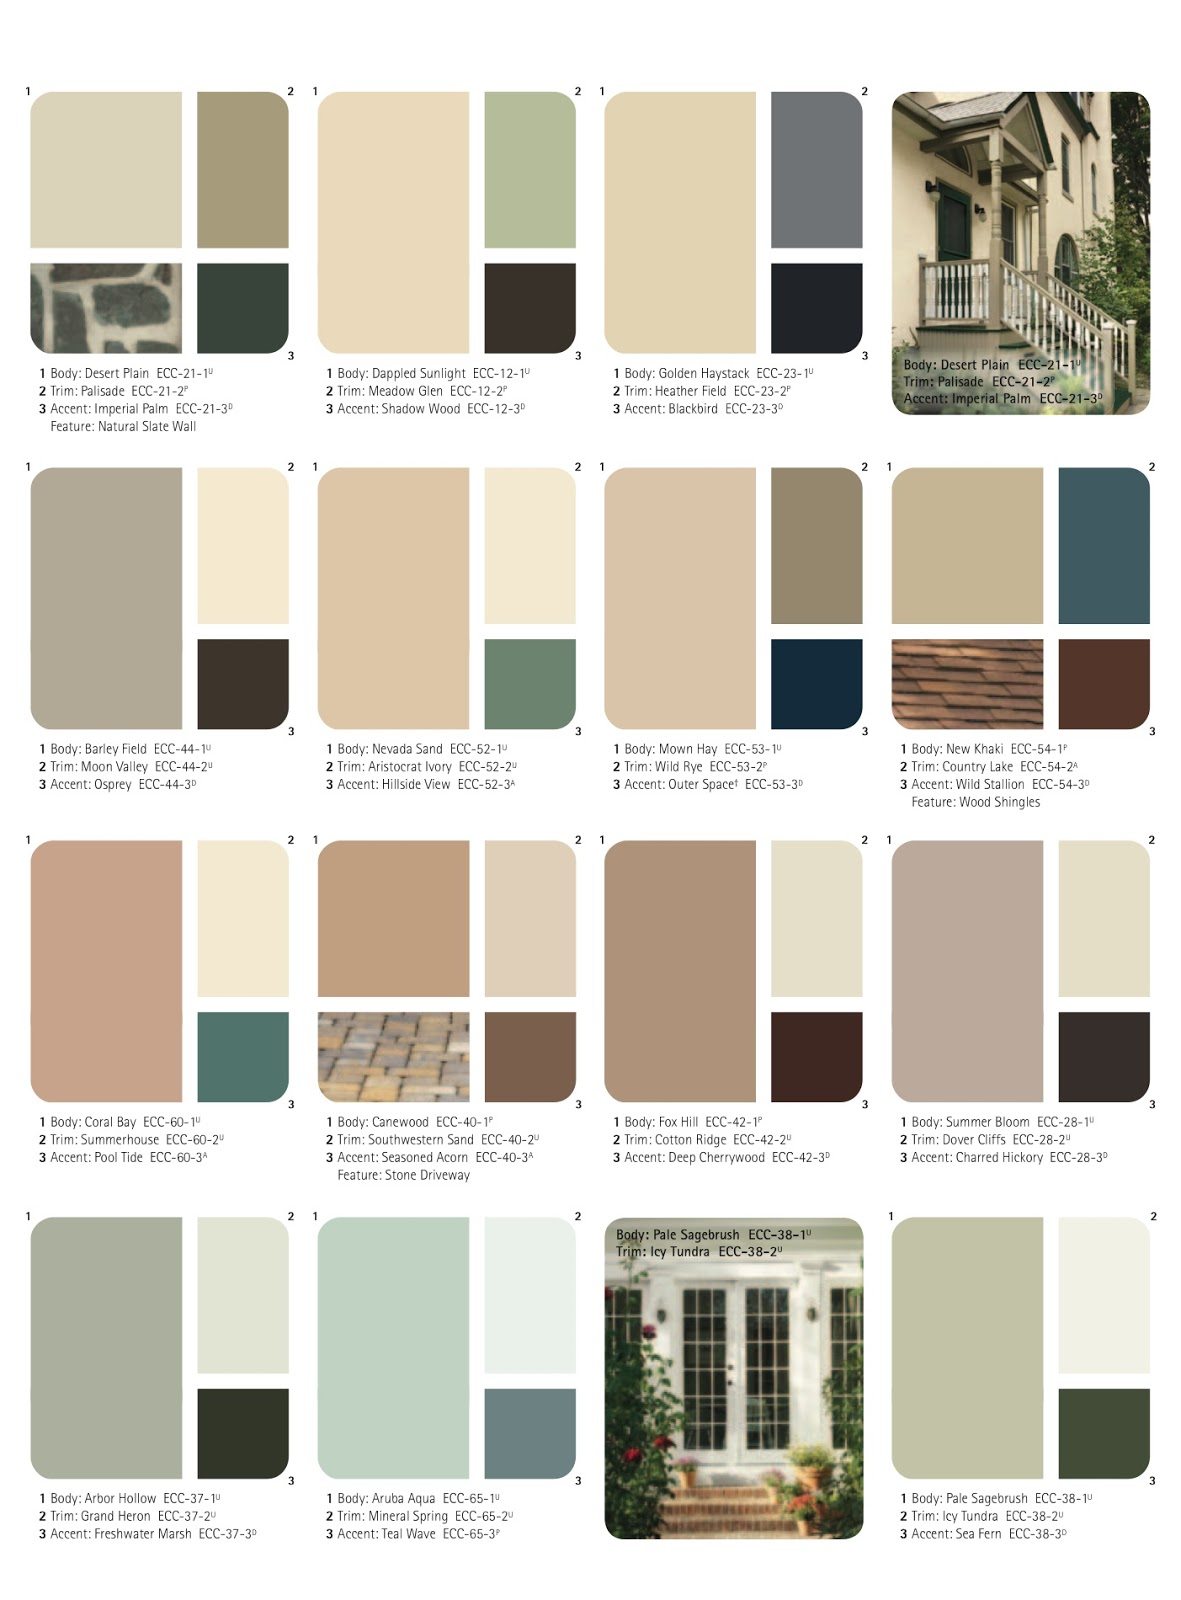 Home depot house paint home painting ideas for Exterior house stain color schemes